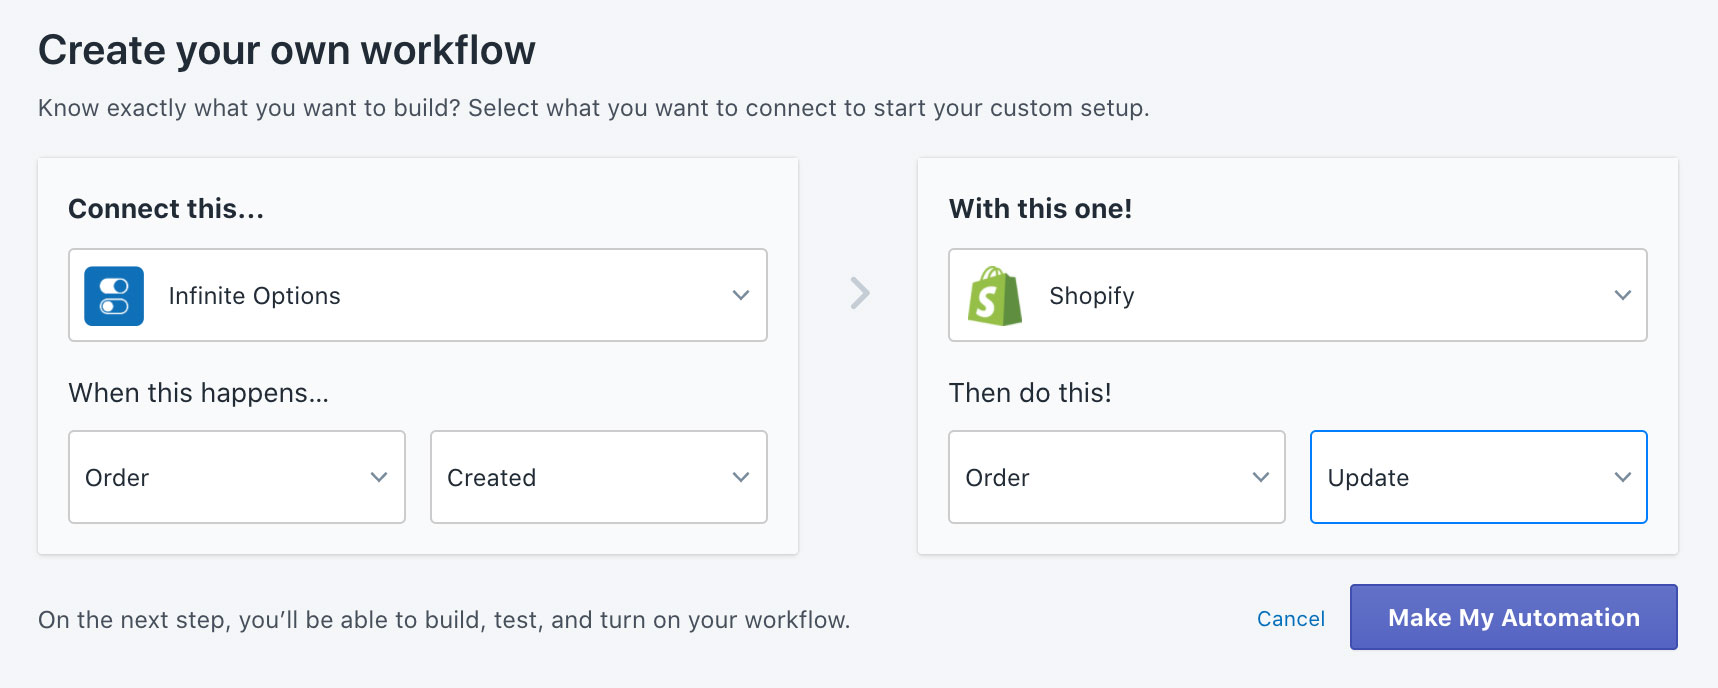 Create your own workflow